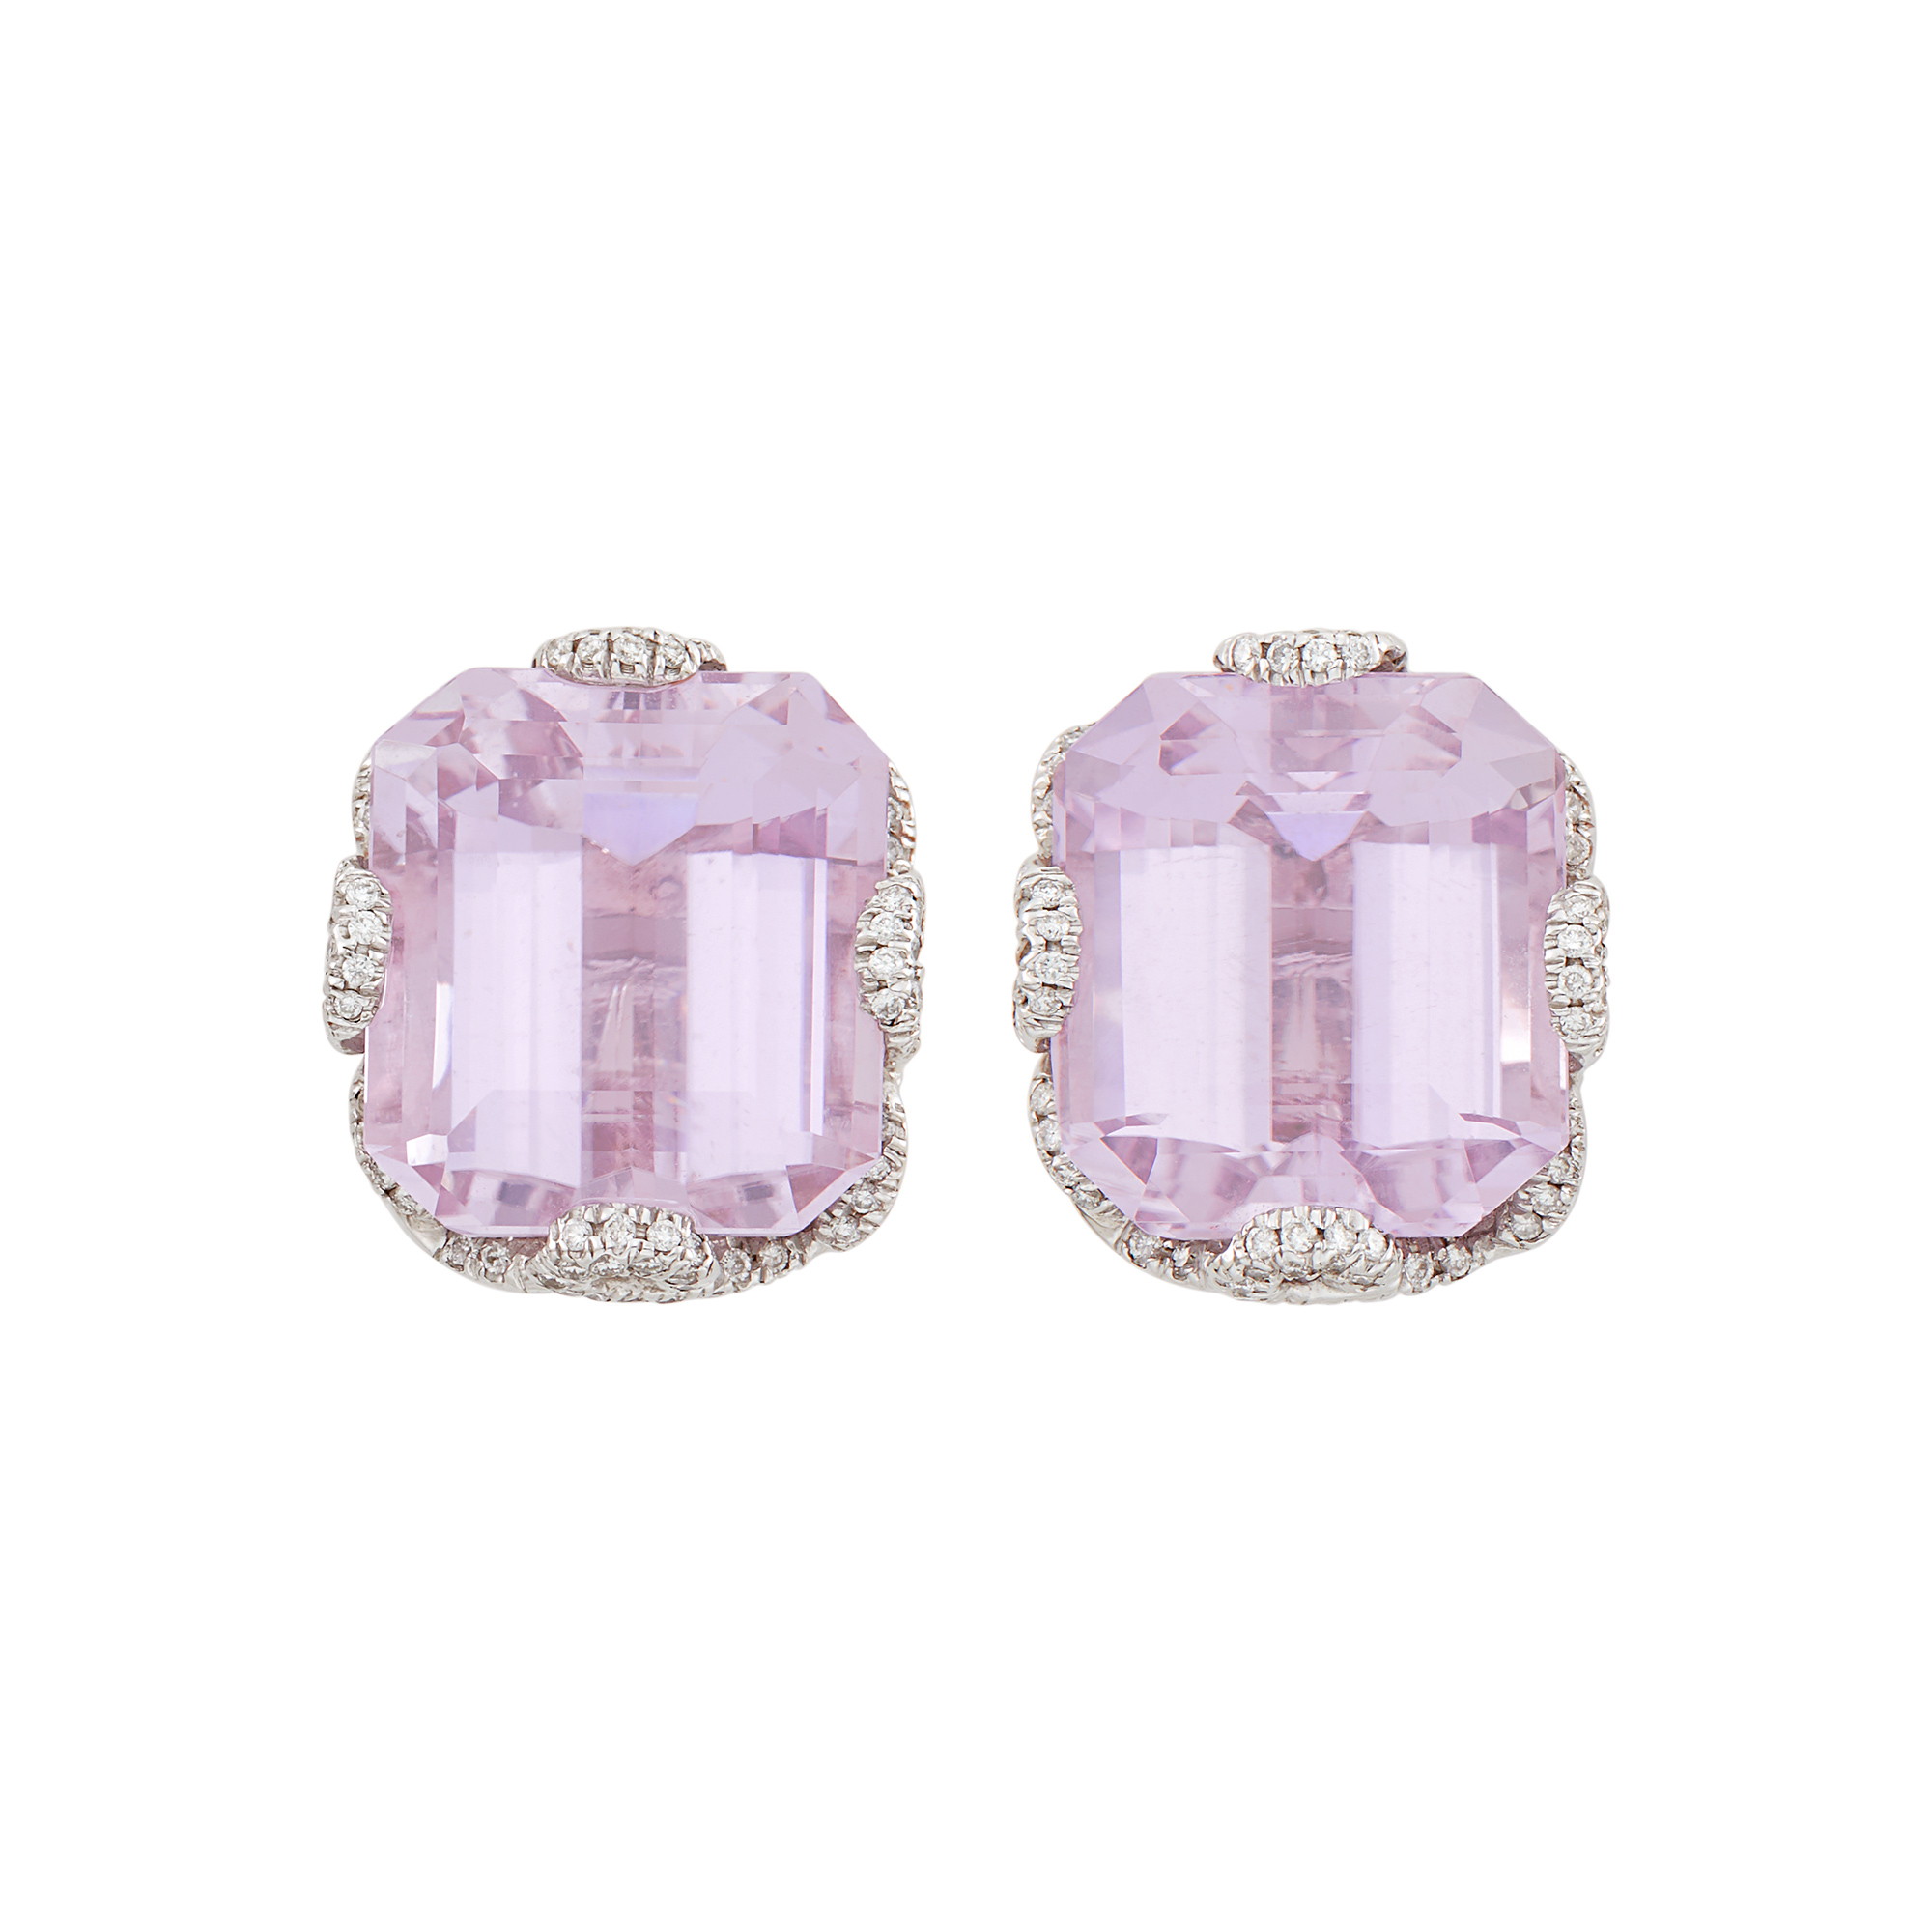 Lot image - Pair of White Gold, Kunzite and Diamond Earclips